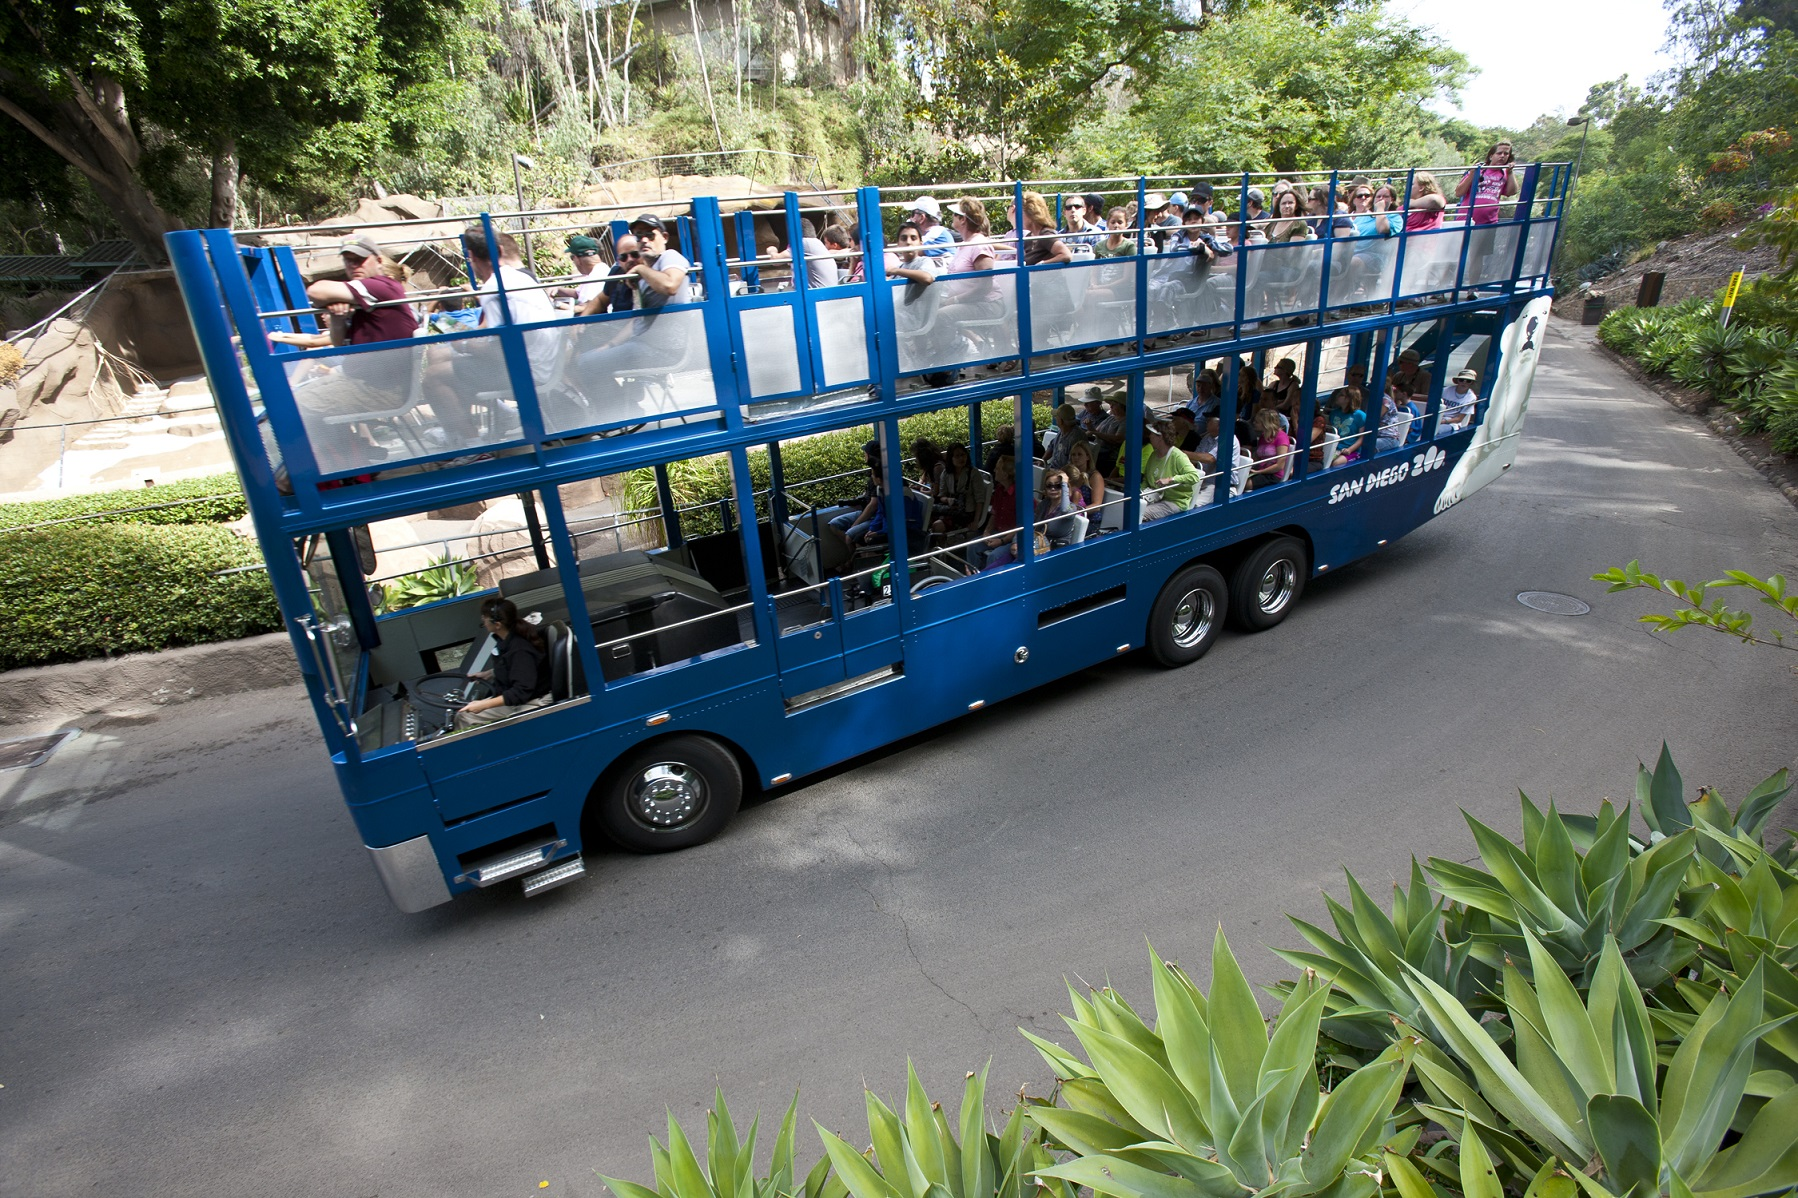 Zoo guided bus tour